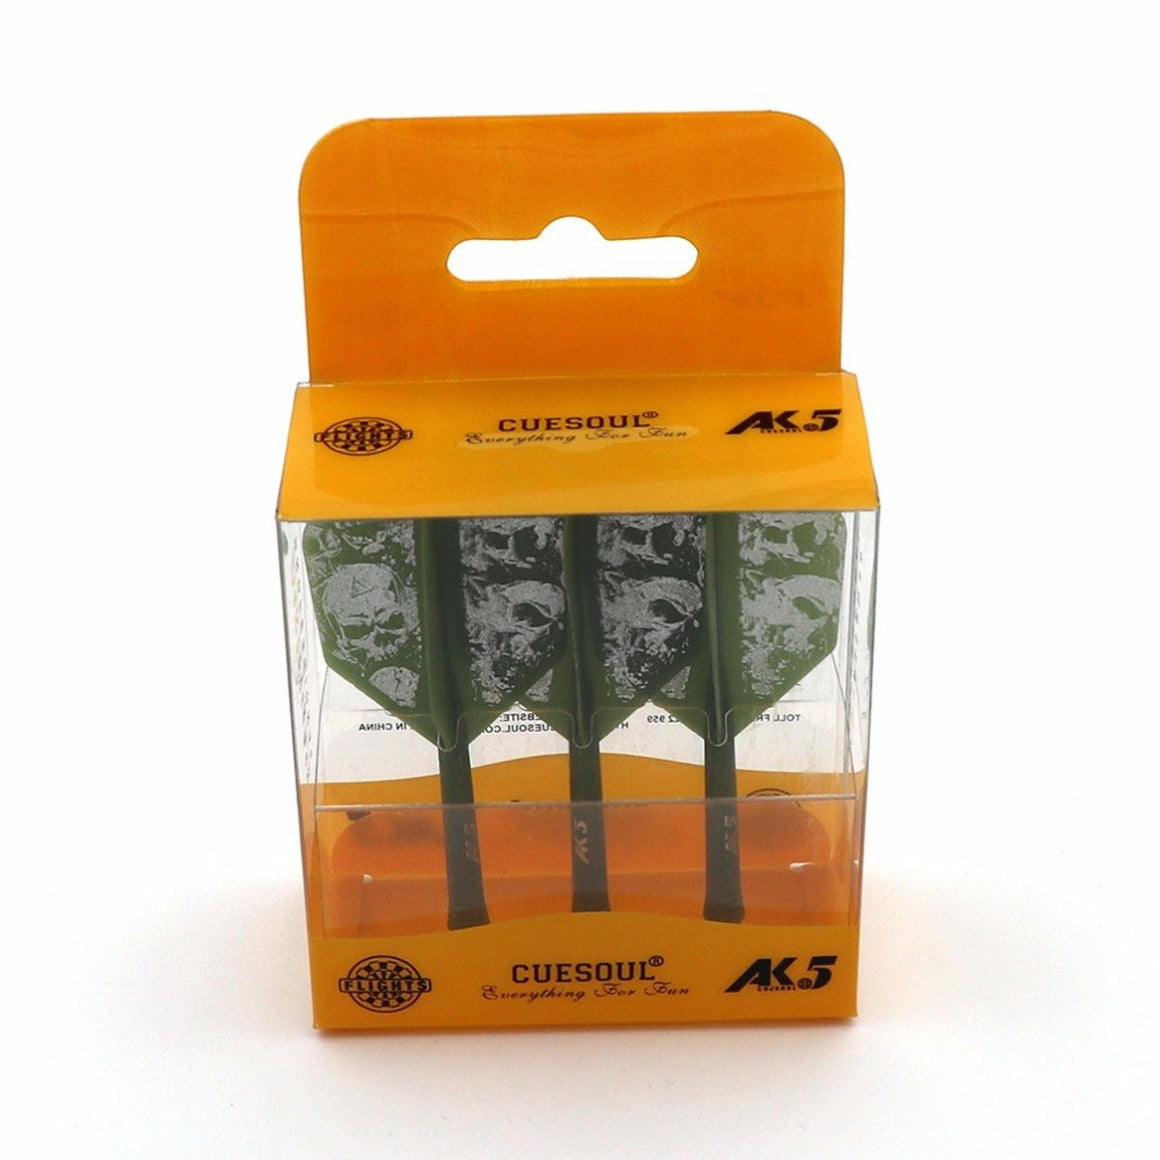 CUESOUL Rost Integrated Dart Shaft and Flights Medium,Set of 3